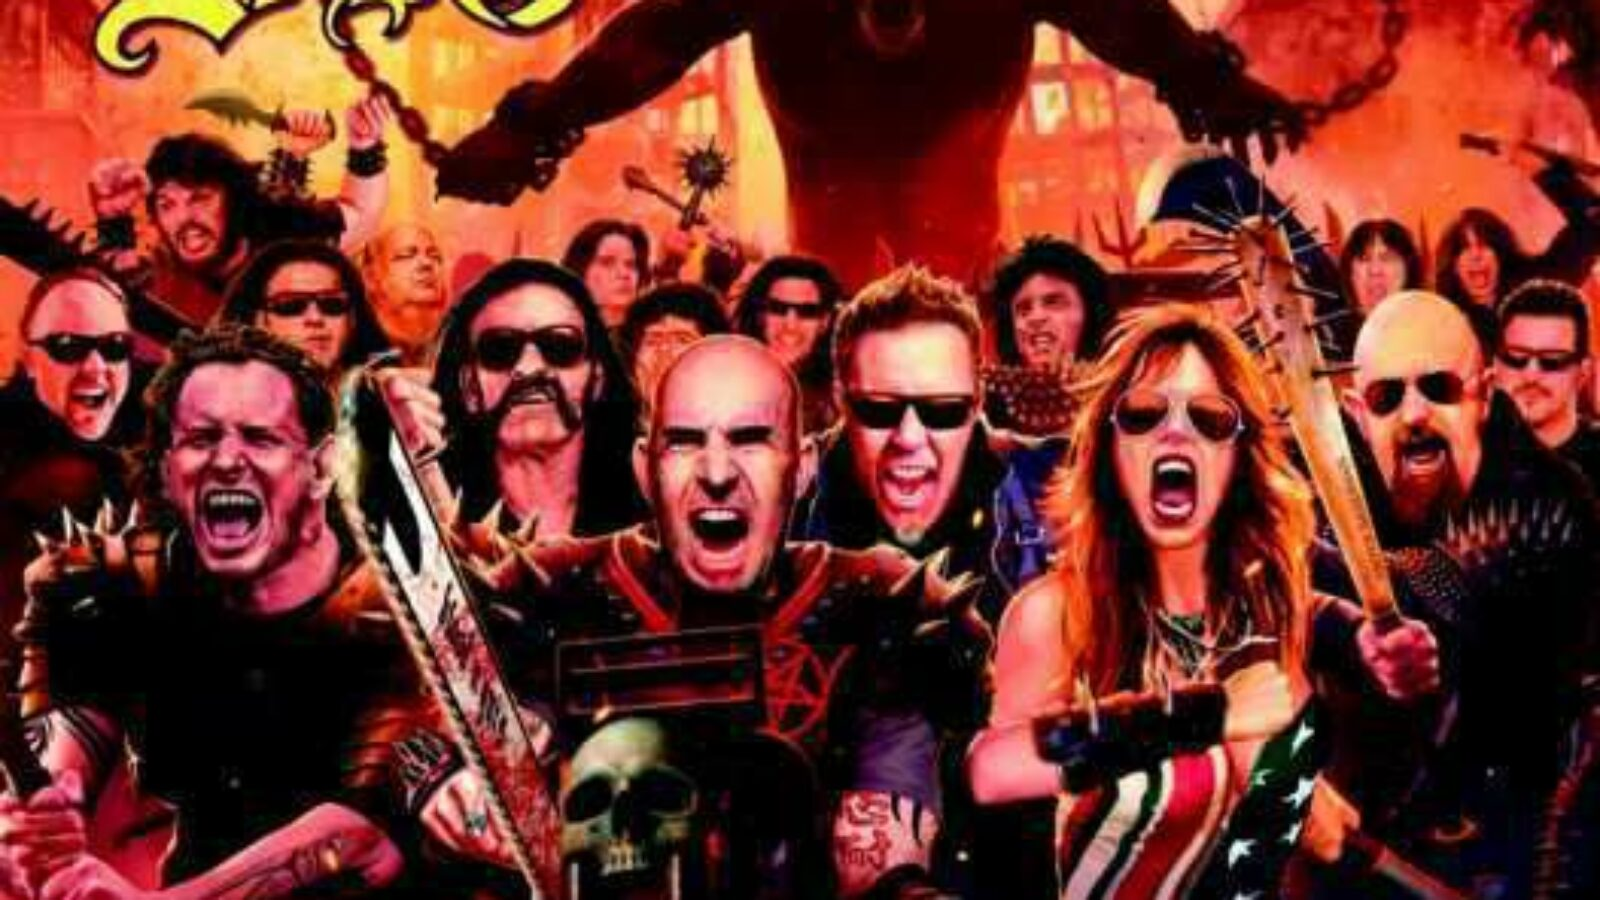 V.A. This Is Your Life – A Tribute To Ronnie James Dio